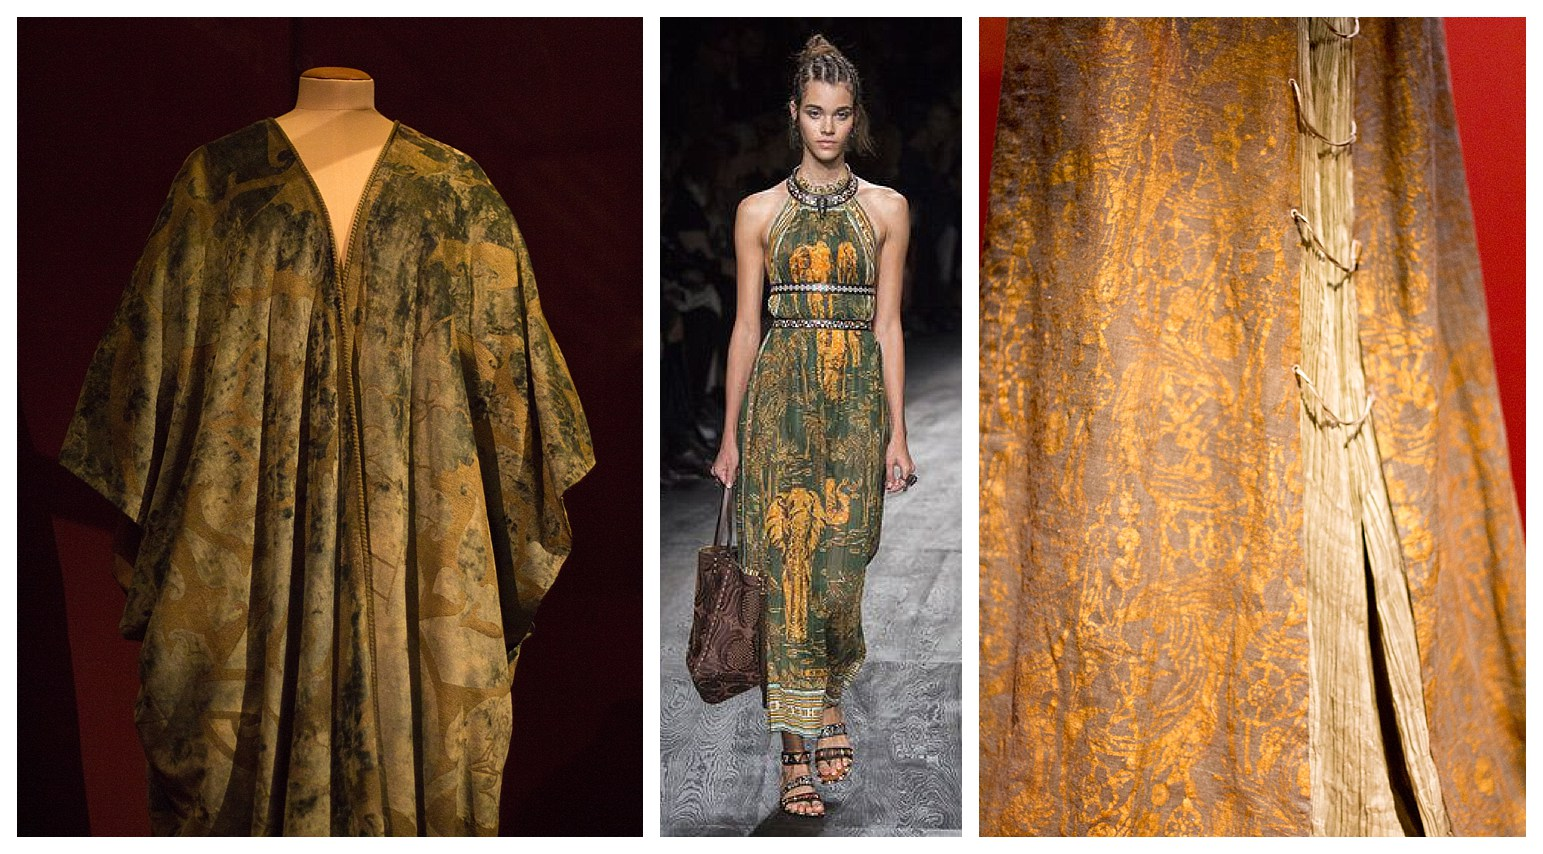 the centre photo in is the from the Valentino spring 2016 collection inspired by the prints, colours and lines of Mario Fortuny. Photos left and right are from the Palais Galleria exhibition.